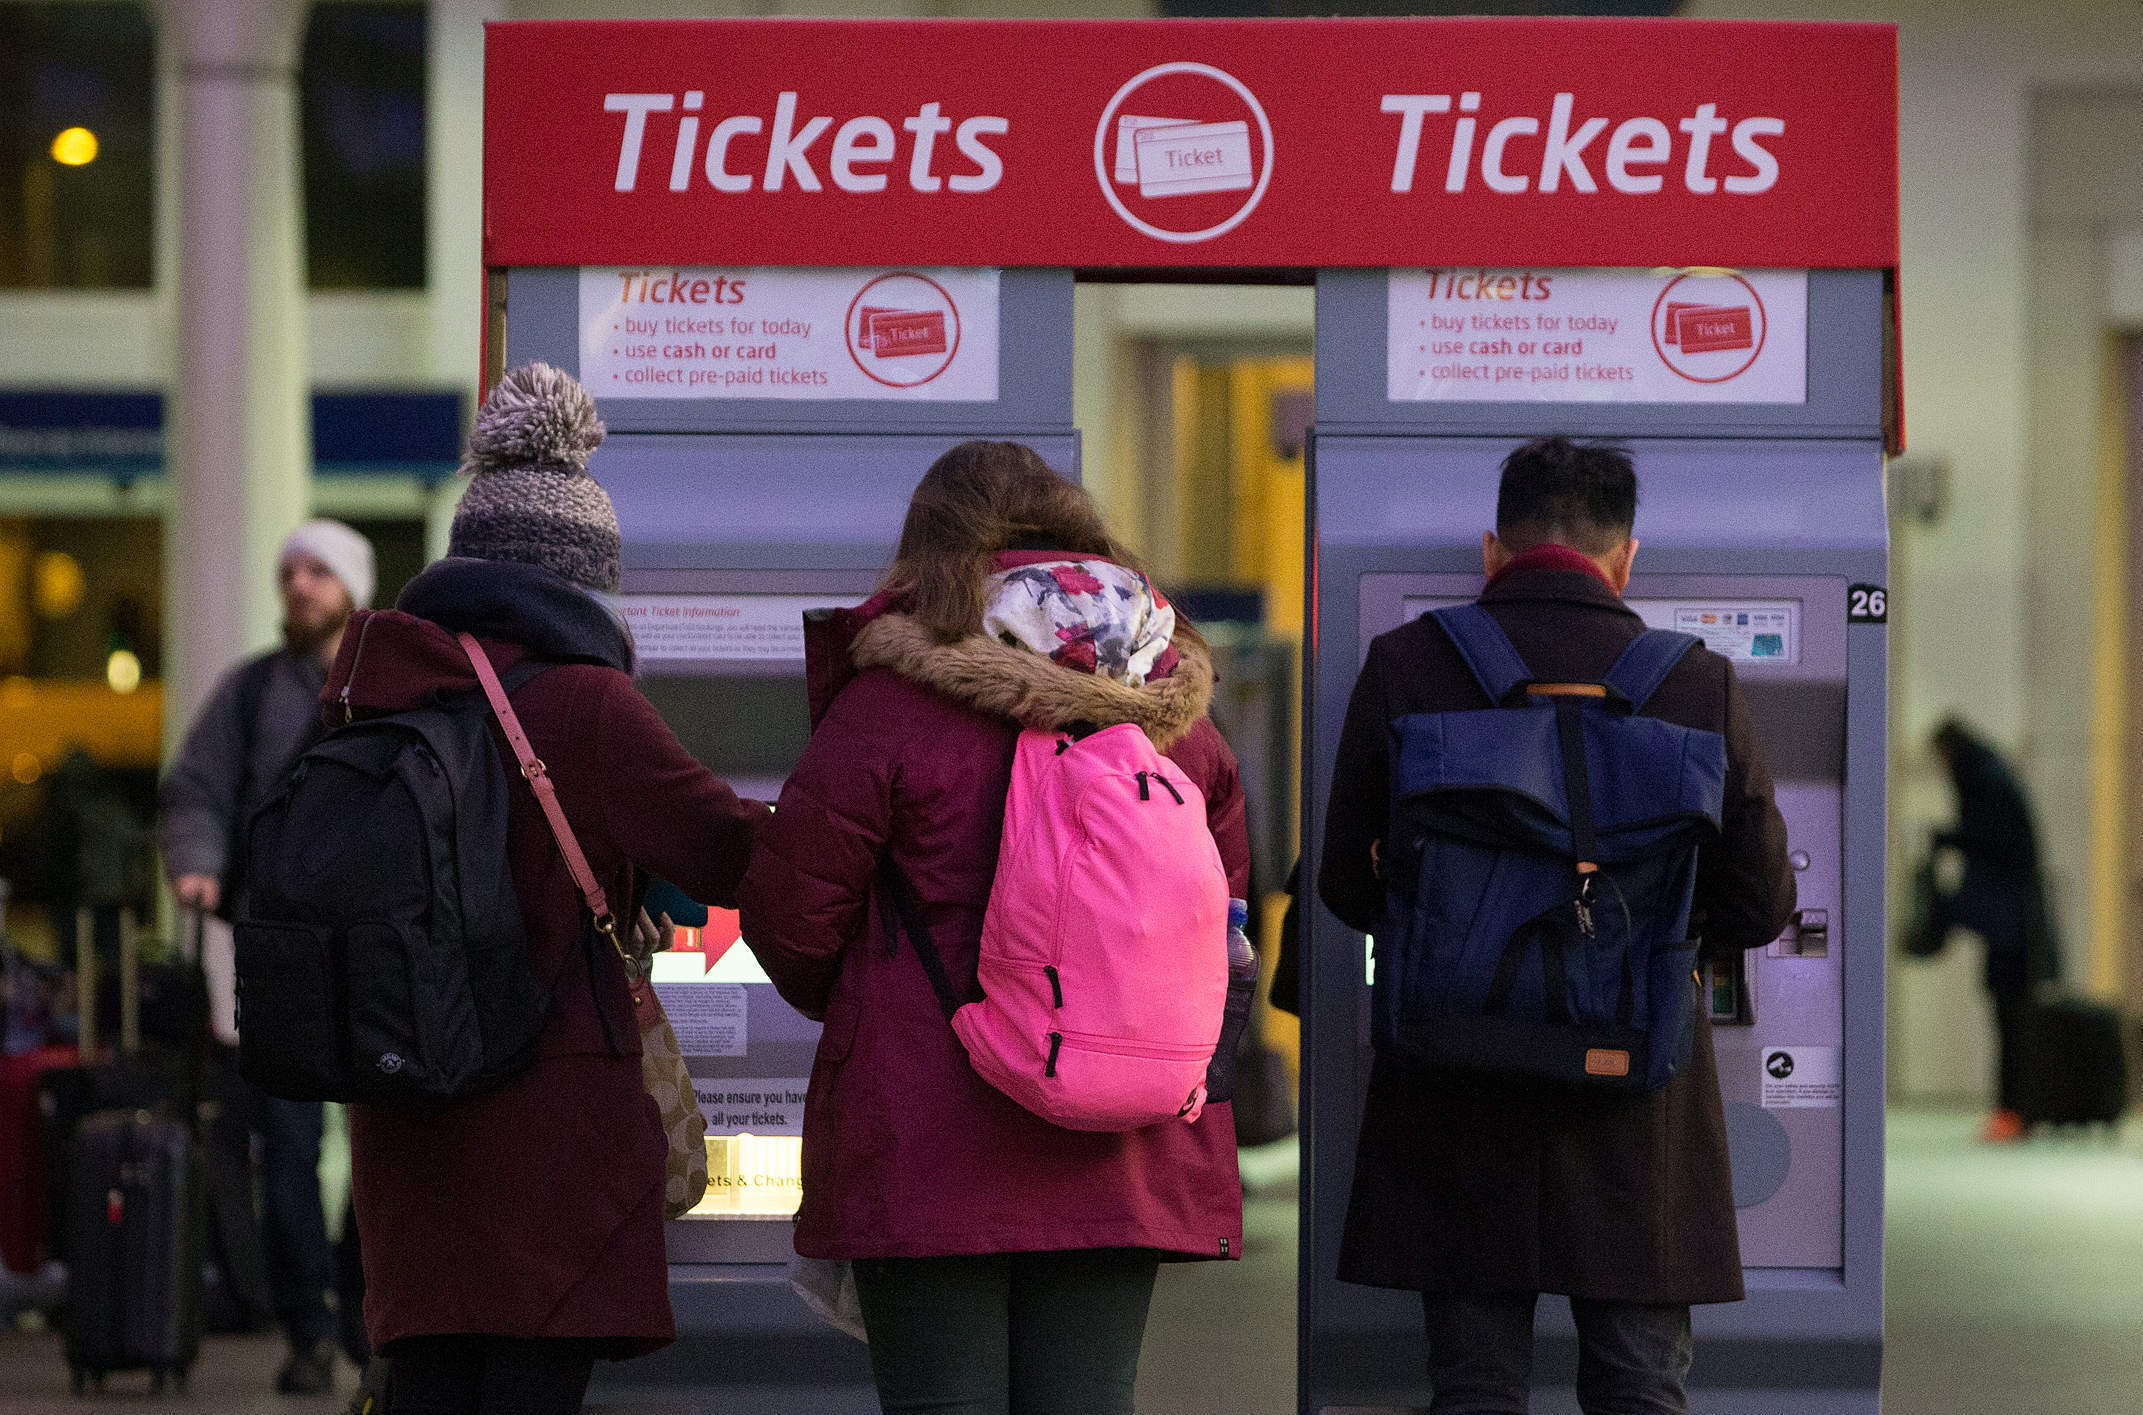 Bus and rail fares have soared since 2010 - the government must listen to passengers